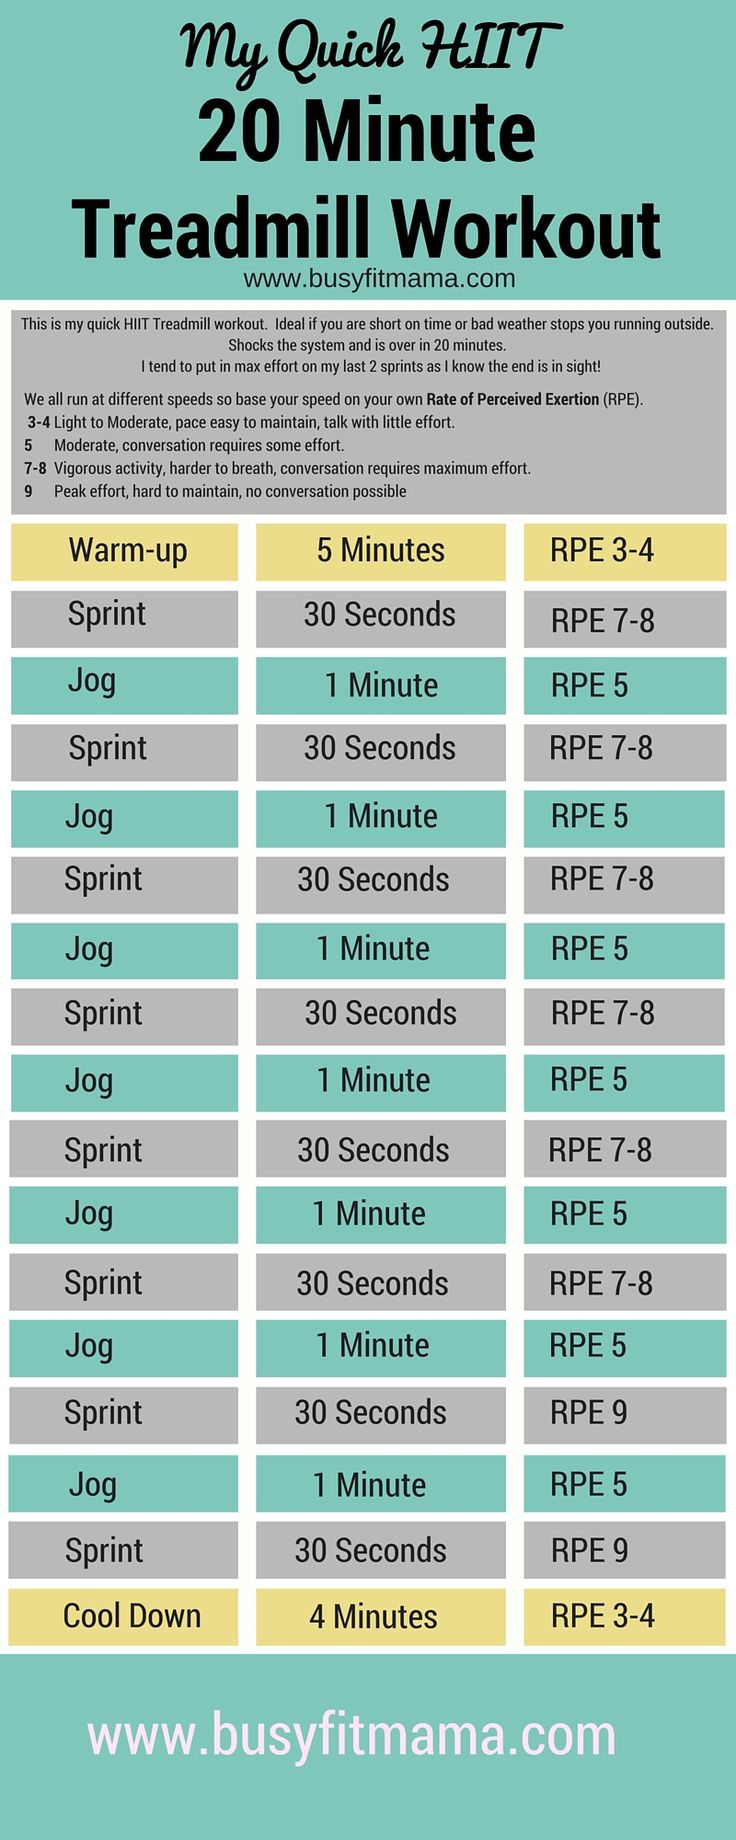 This is a Quick HIIT Treadmill Workout I use when I've not got time to put in a long run or the weather outside is awful.  I love this workout as it get the heart pumping and I get a post workout buzz once it's finished! http://www.busyfitmama.com/quick-hiit-20-minute-treadmill-workout/